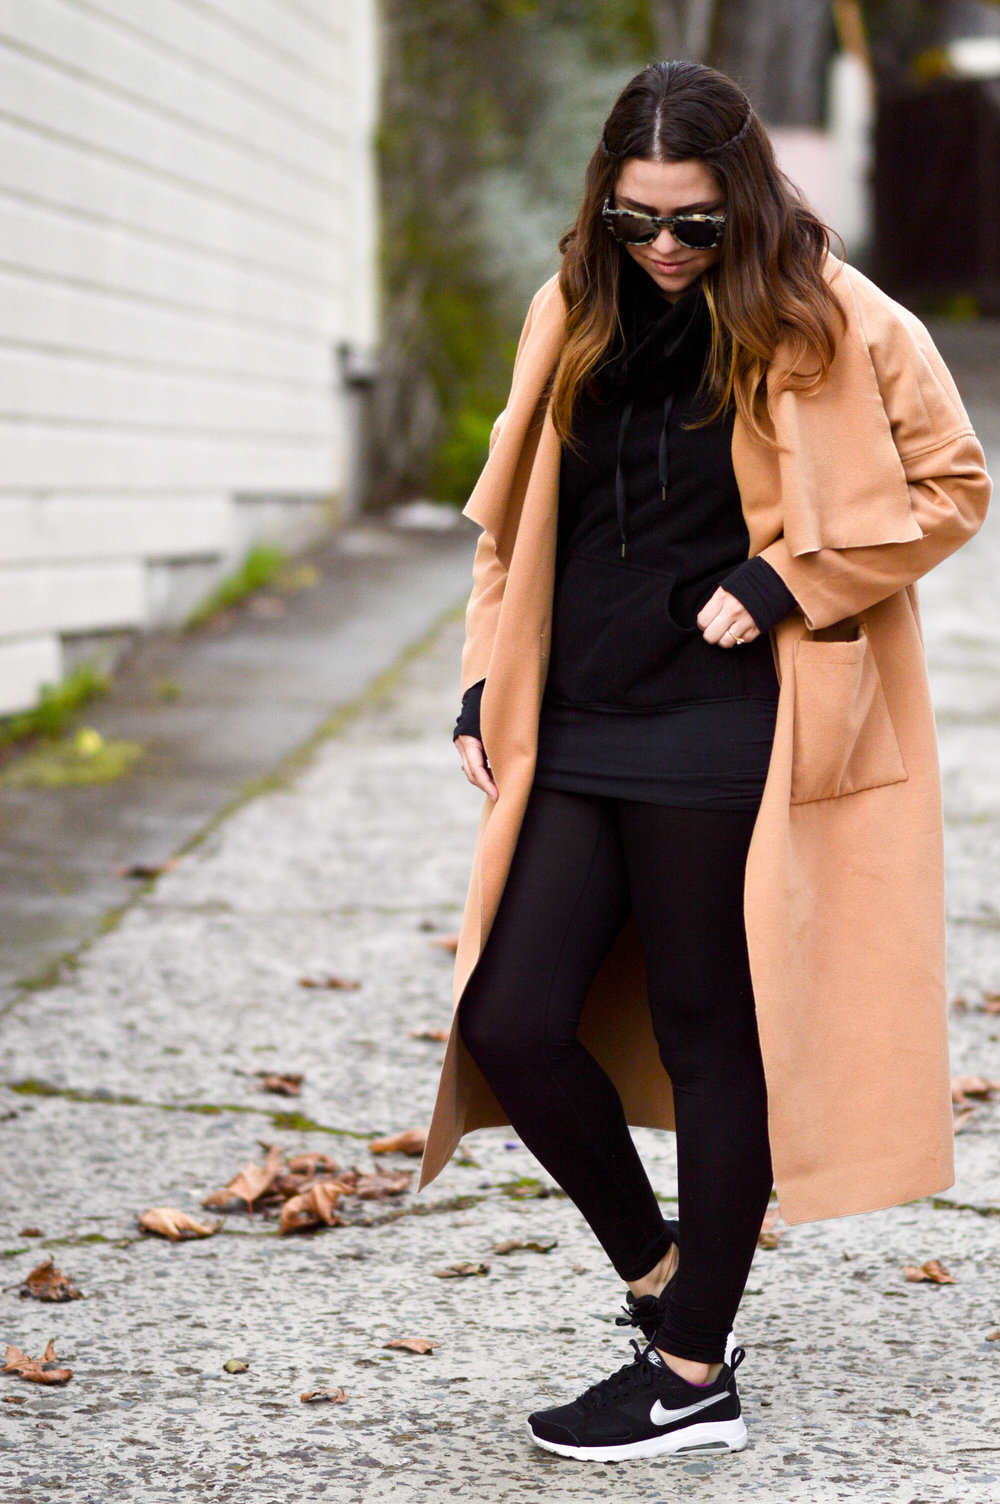 Late Fall Layering with Uniqlo Heat Tech #uniqlolifewear via. www.birdieshoots.com